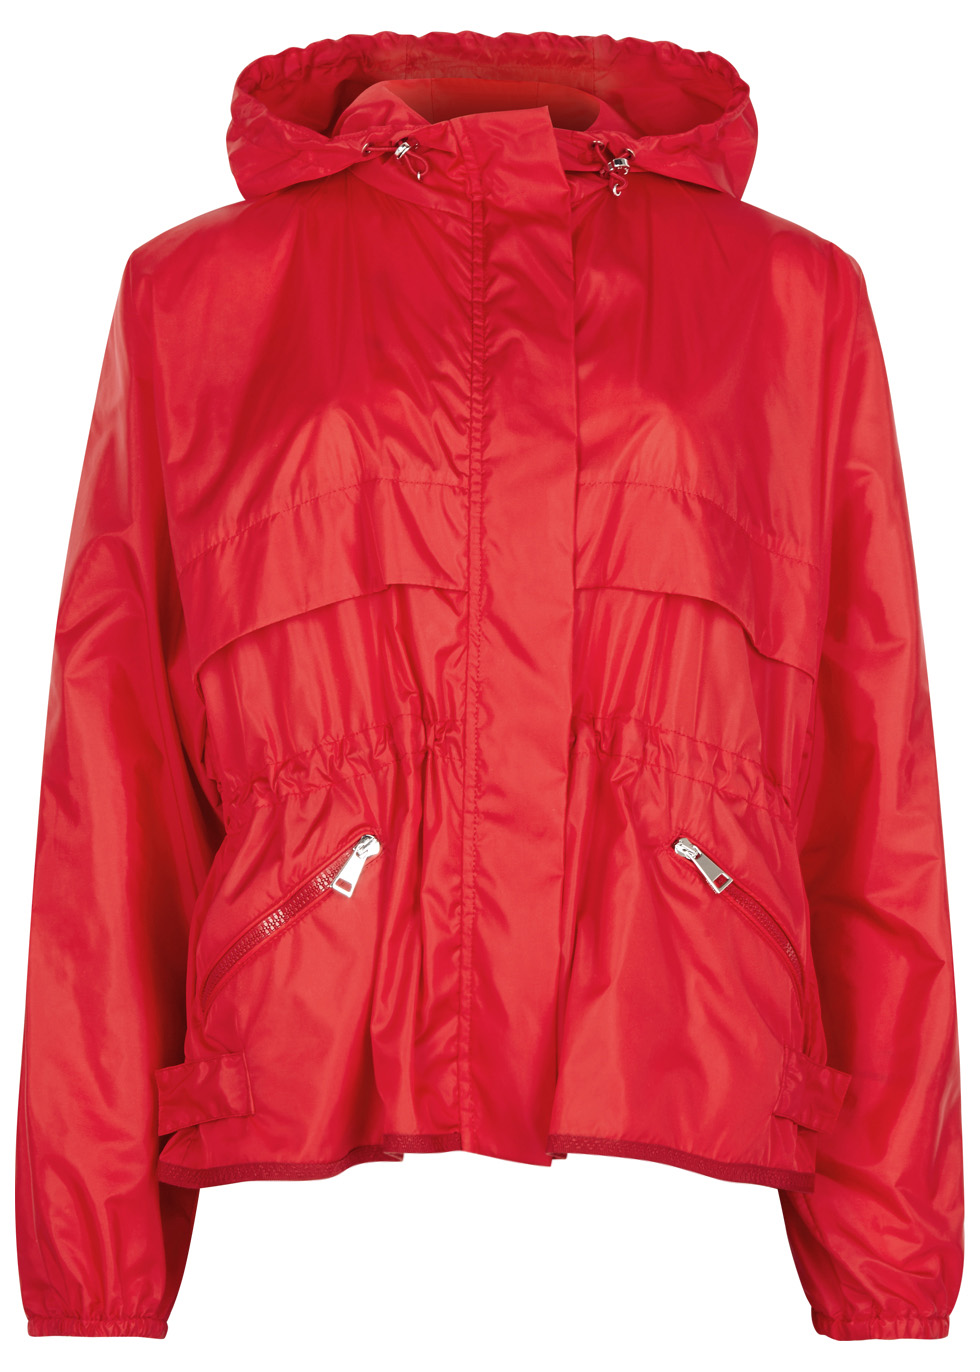 moncler jacket harvey nichols